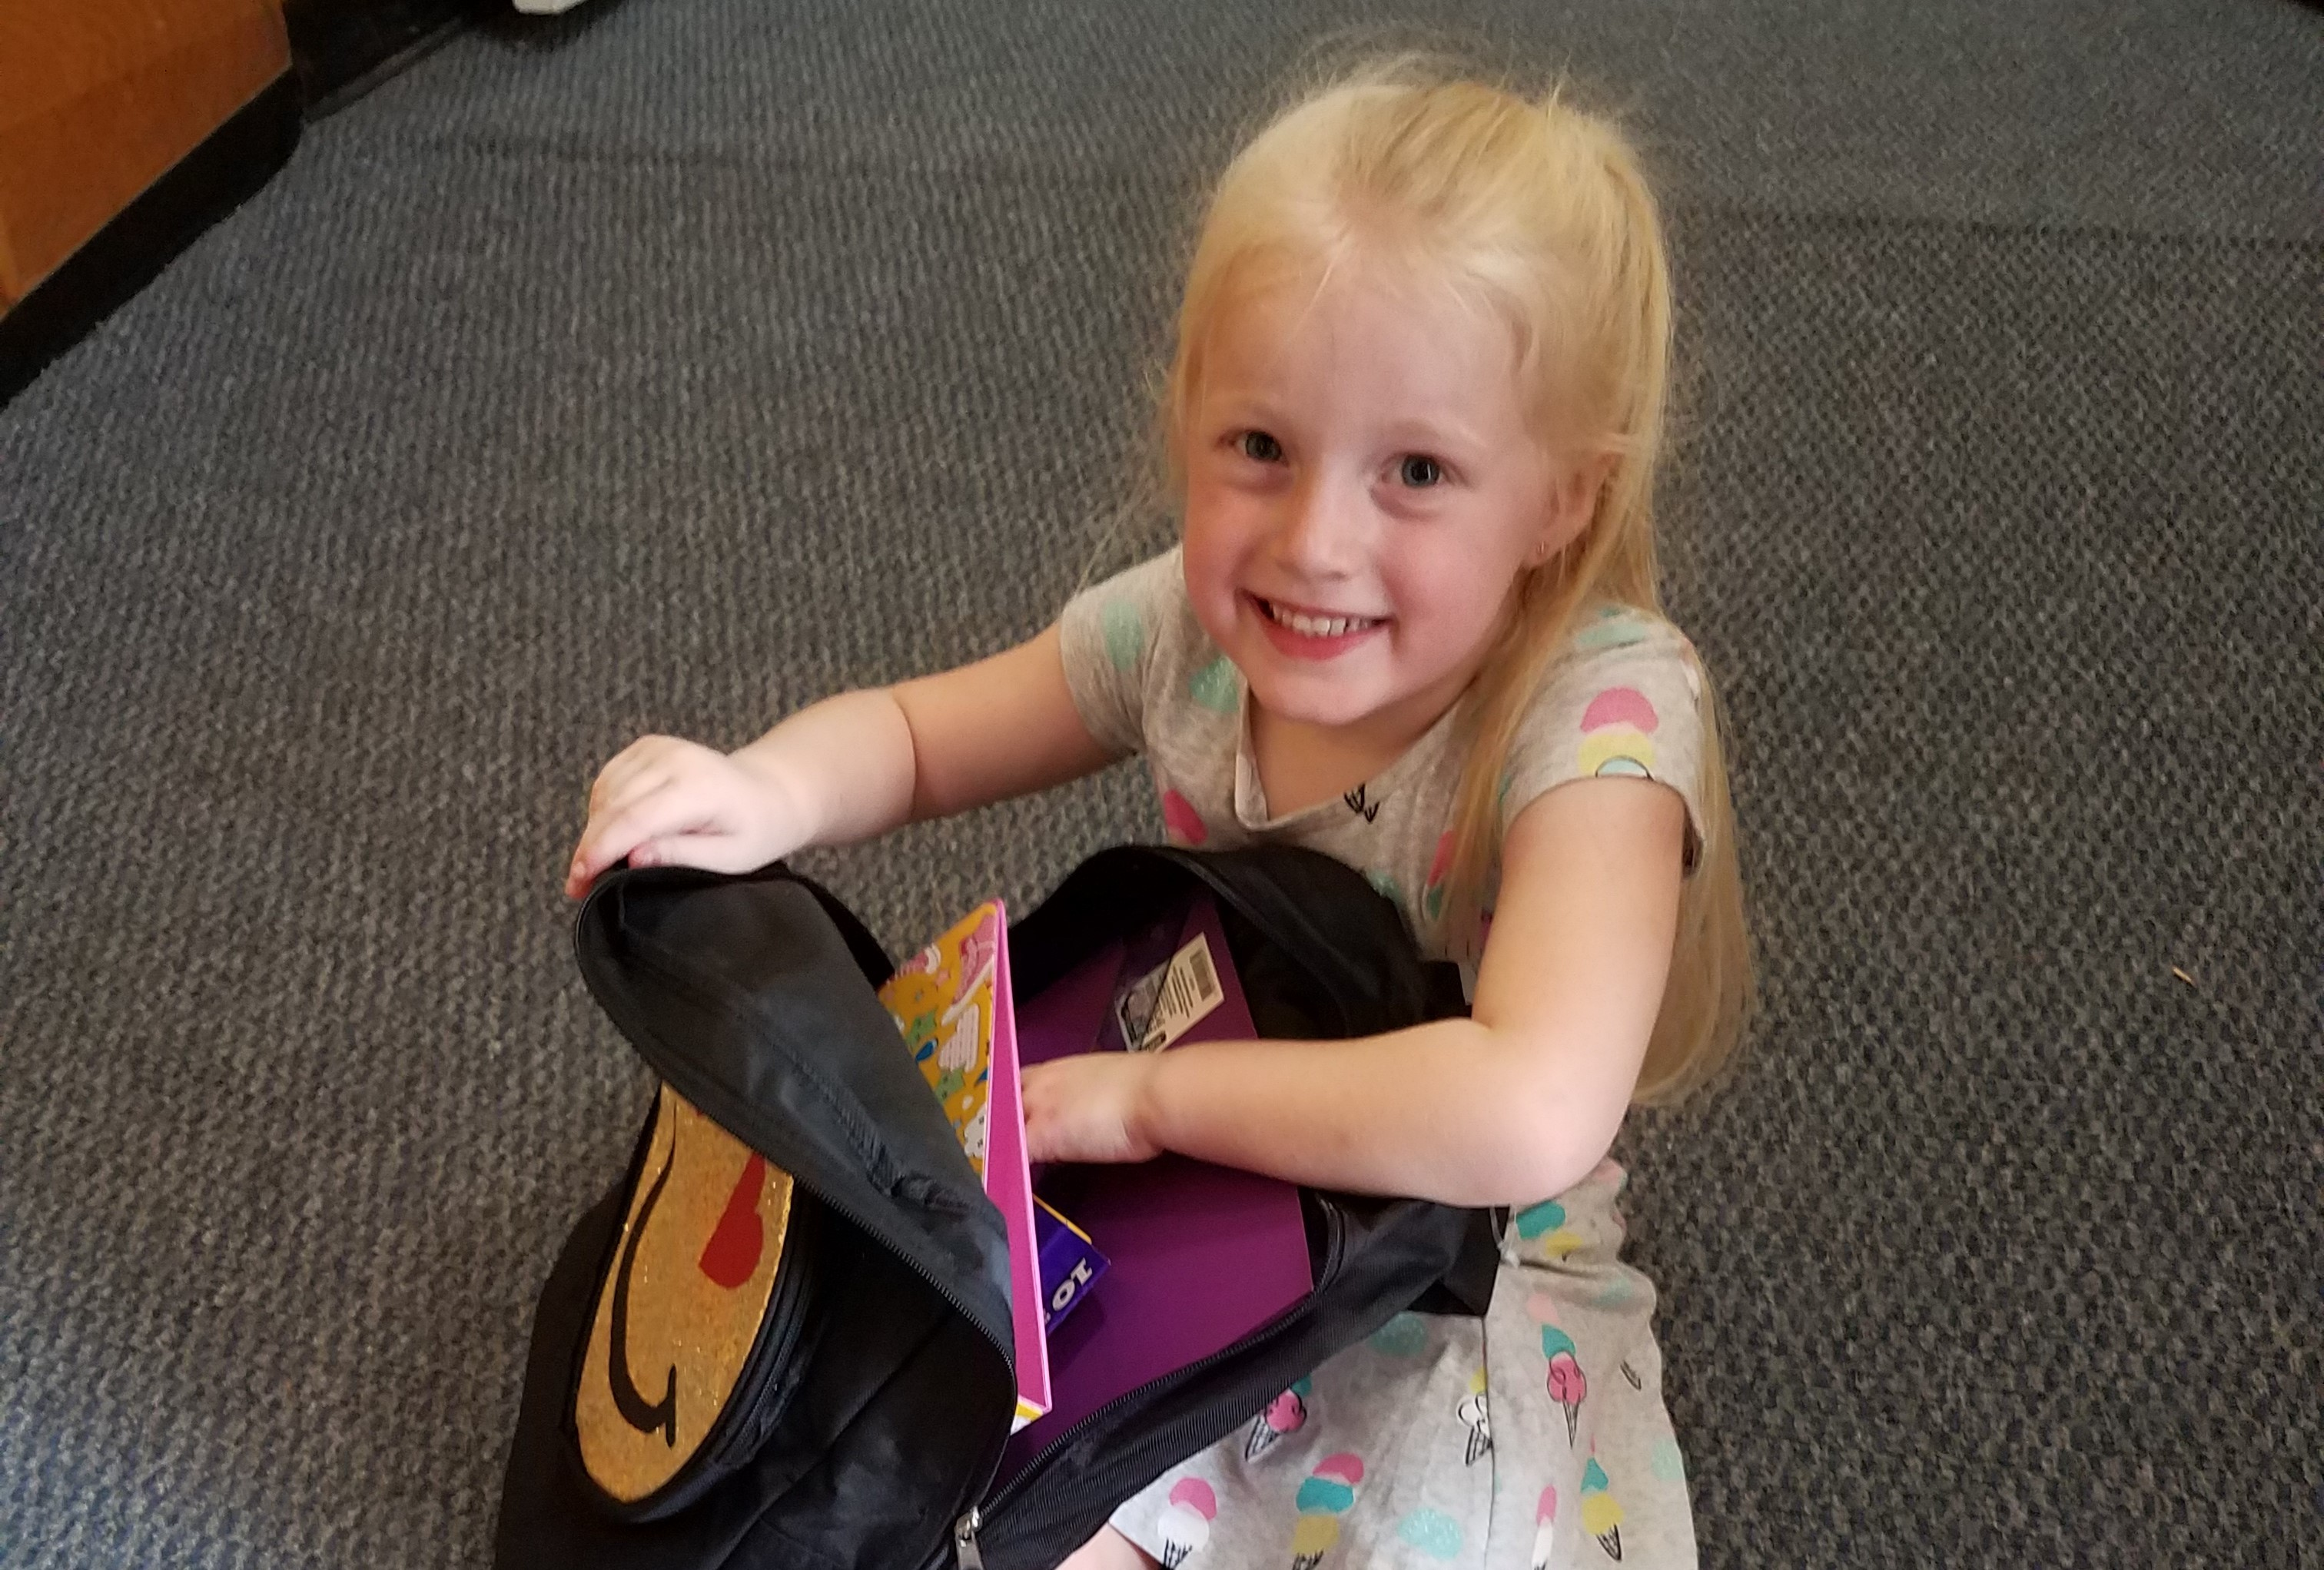 Students were able to choose a backpack and fill it with school supplies at the Expo!